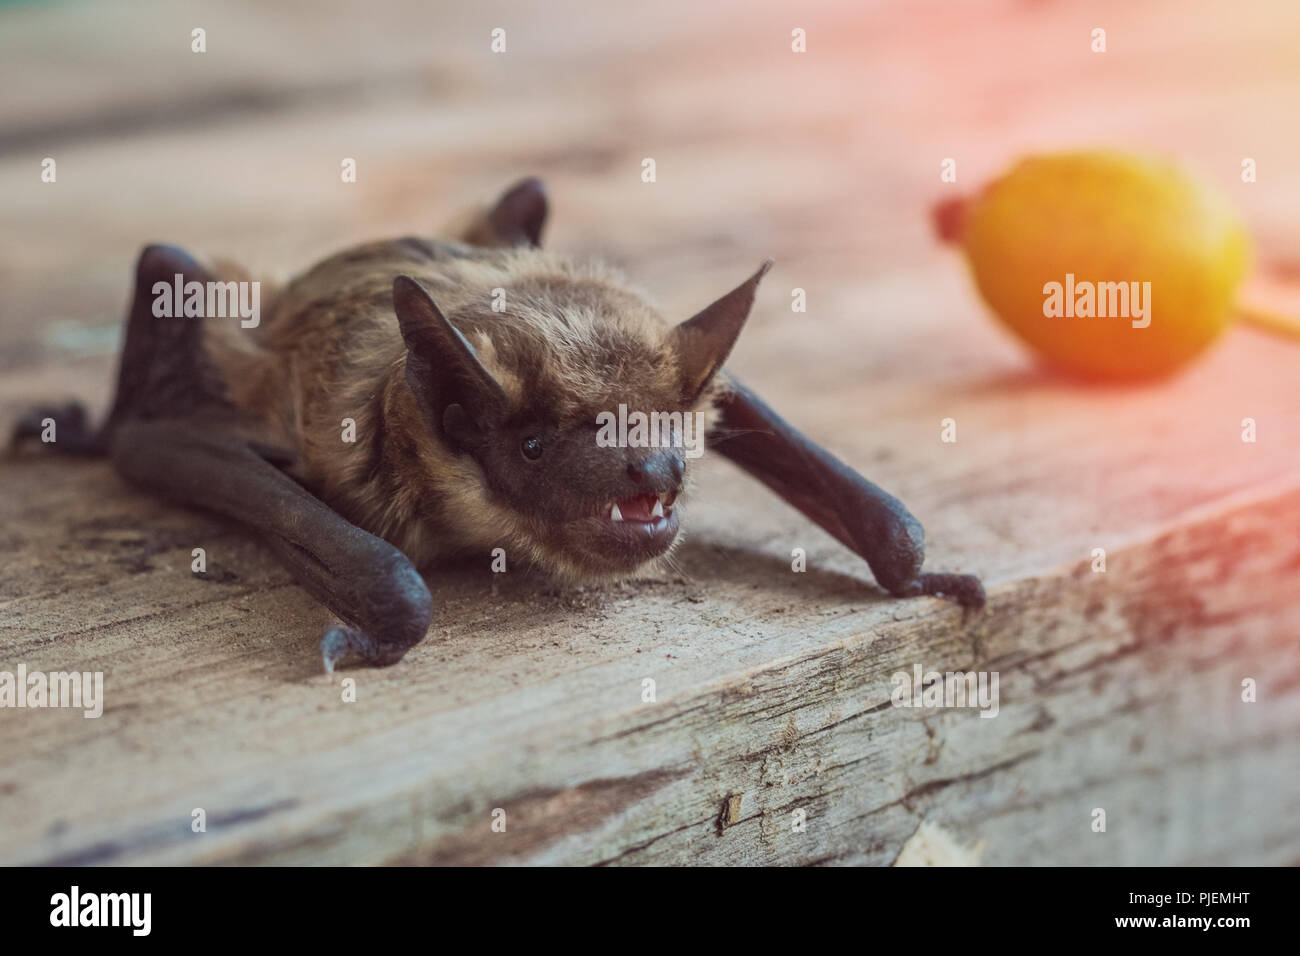 A Bat Close Up Of A Muzzle On A Wooden Table In The Afternoon Stock